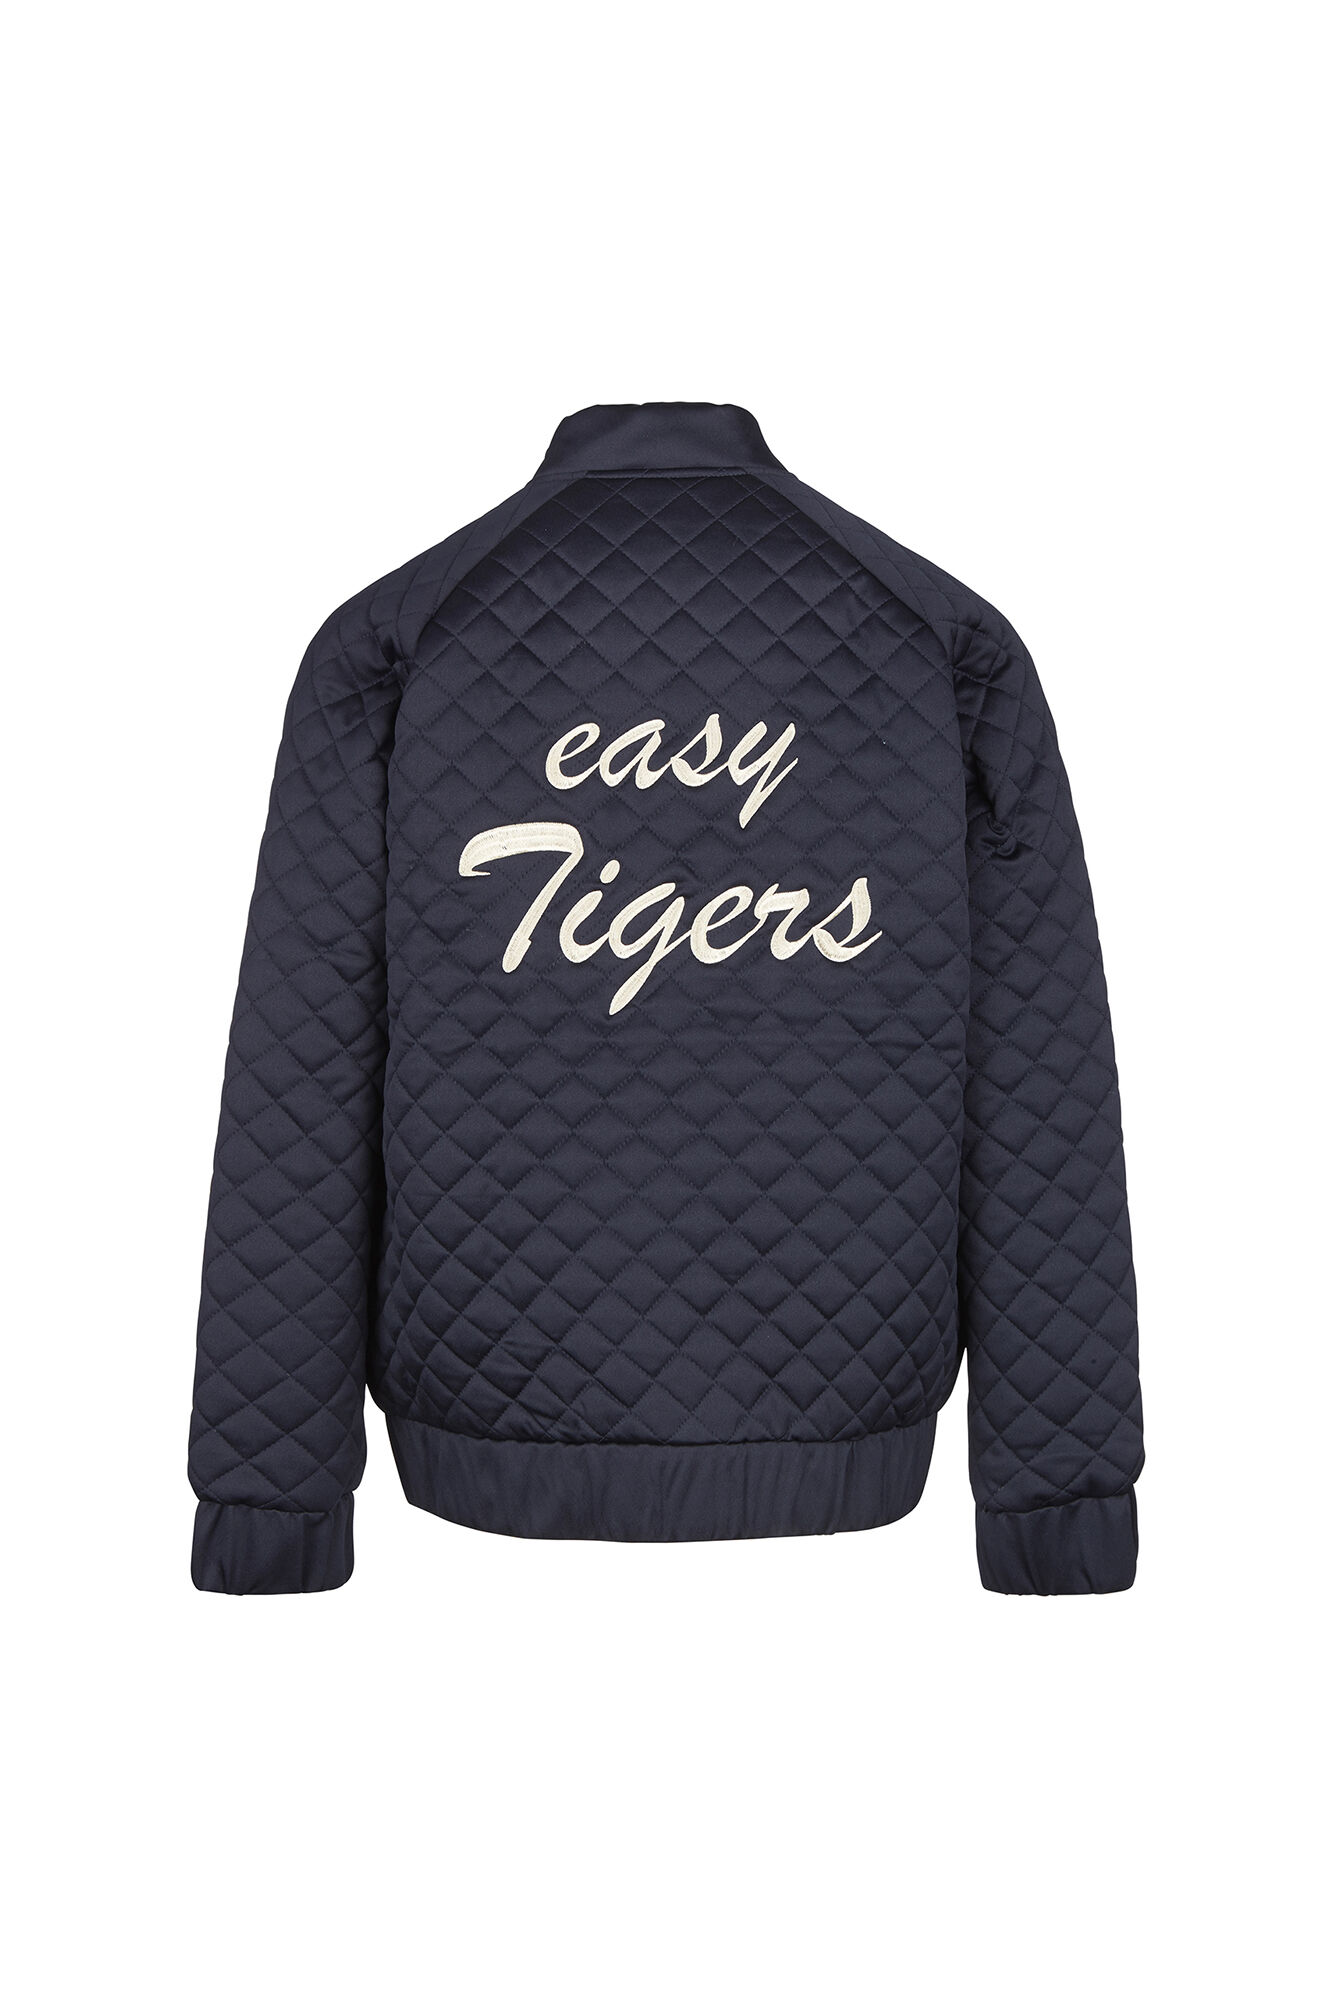 ROAD JACKET TIGERS 6426